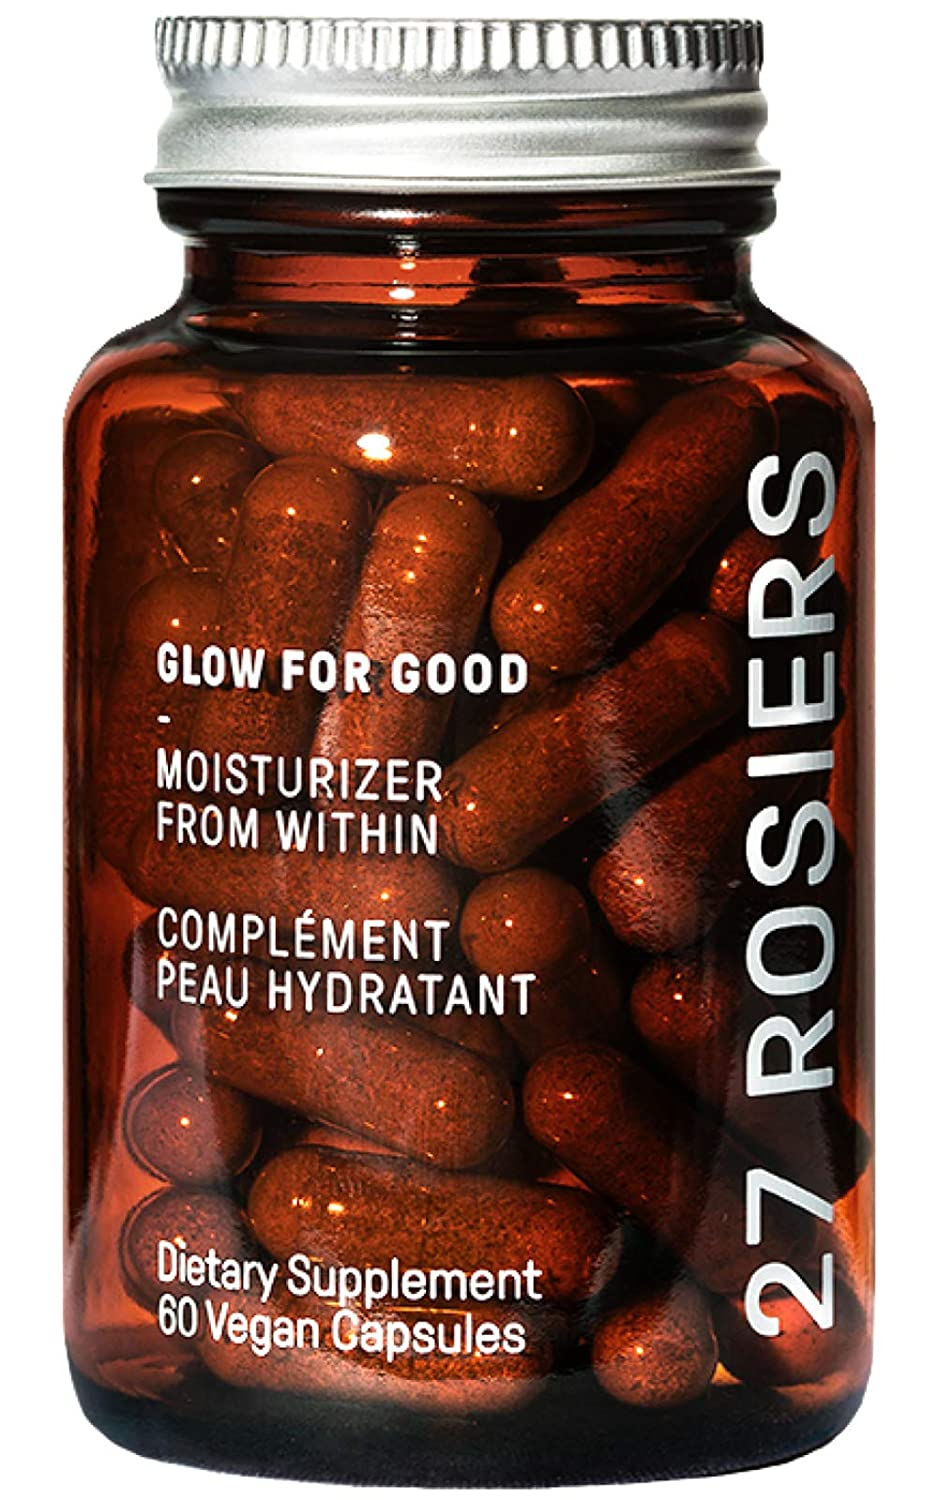 27 Rosiers - Glow For Good Moisturizer From Within | Clean Beauty Supplement (60 Capsules)